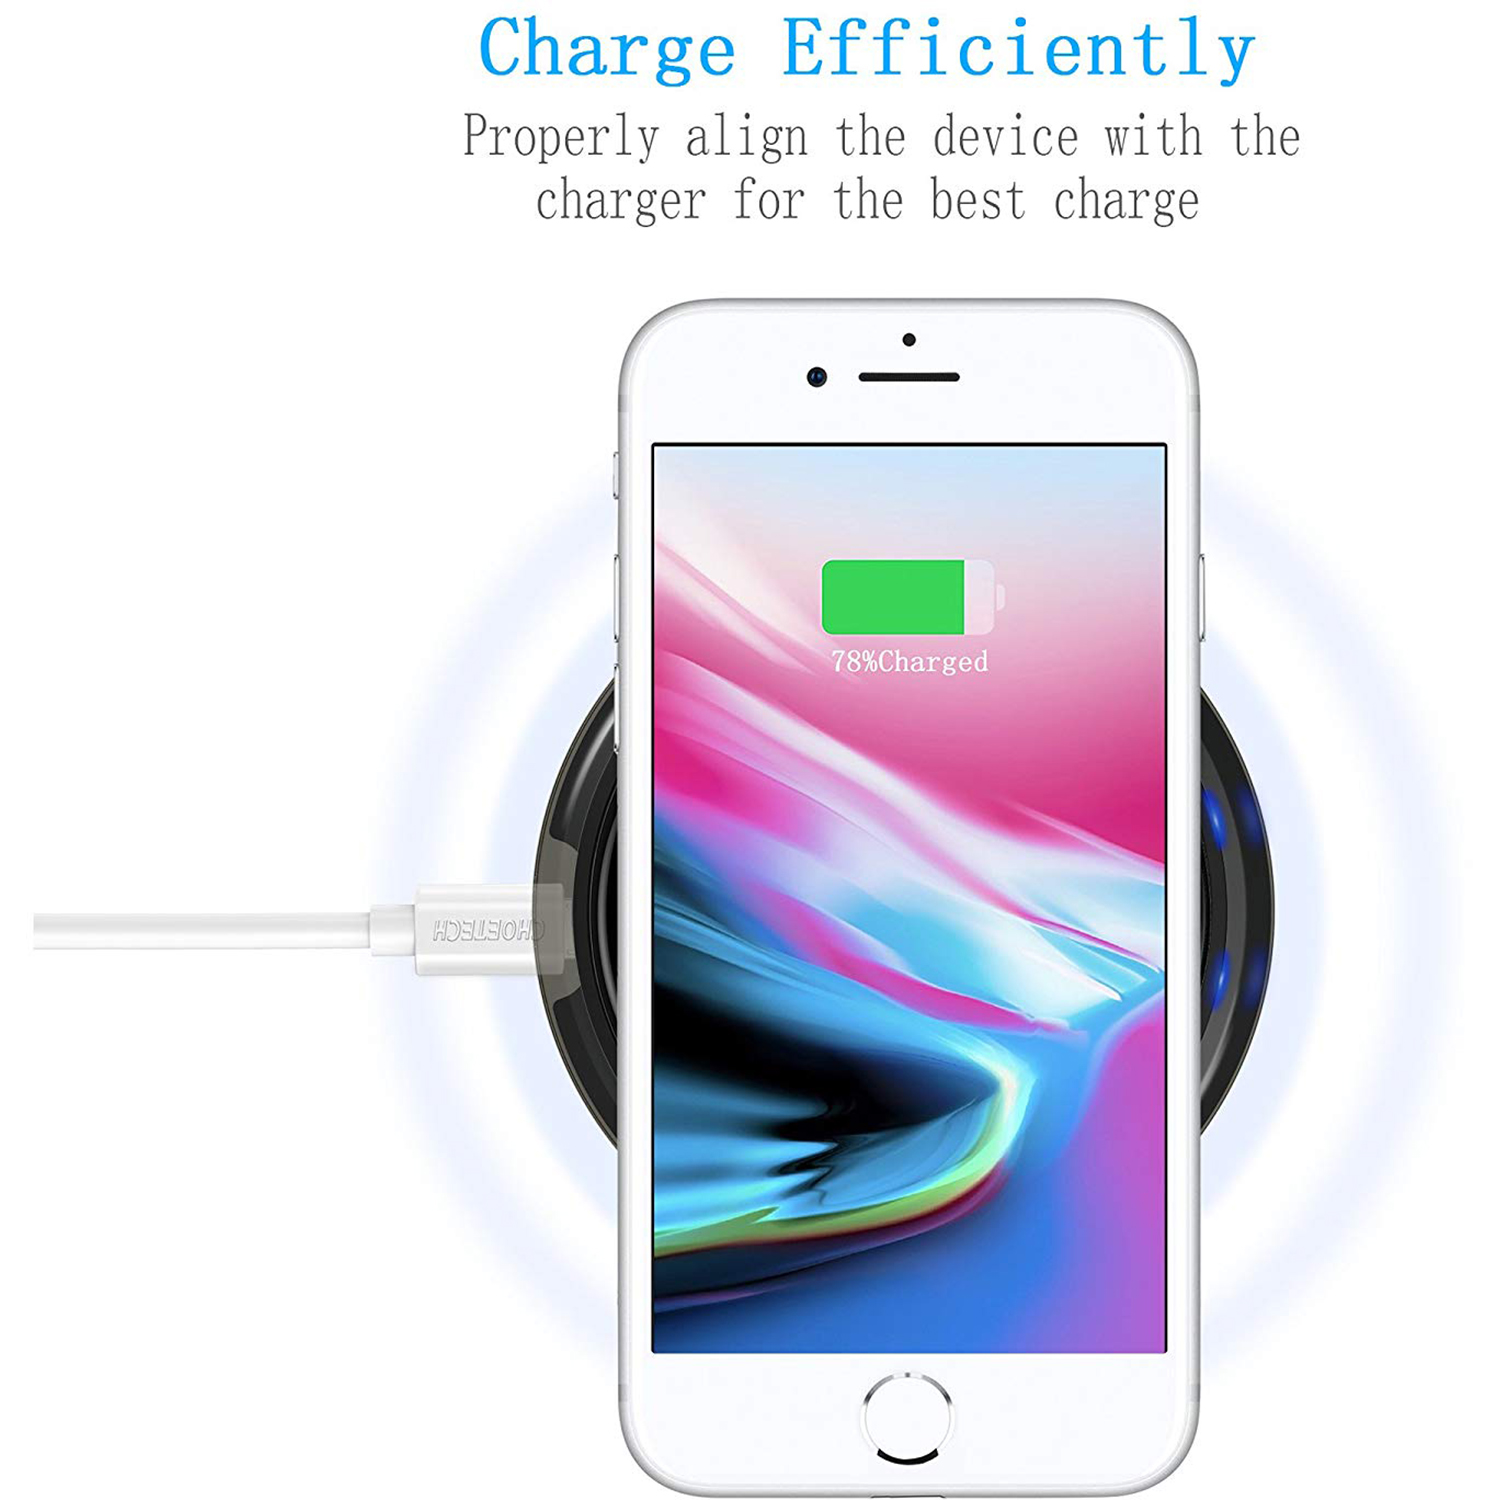 CHOETECH-Wireless-Cell-Phone-Charging-Pad-for-Qi-Enabled-Devices thumbnail 6